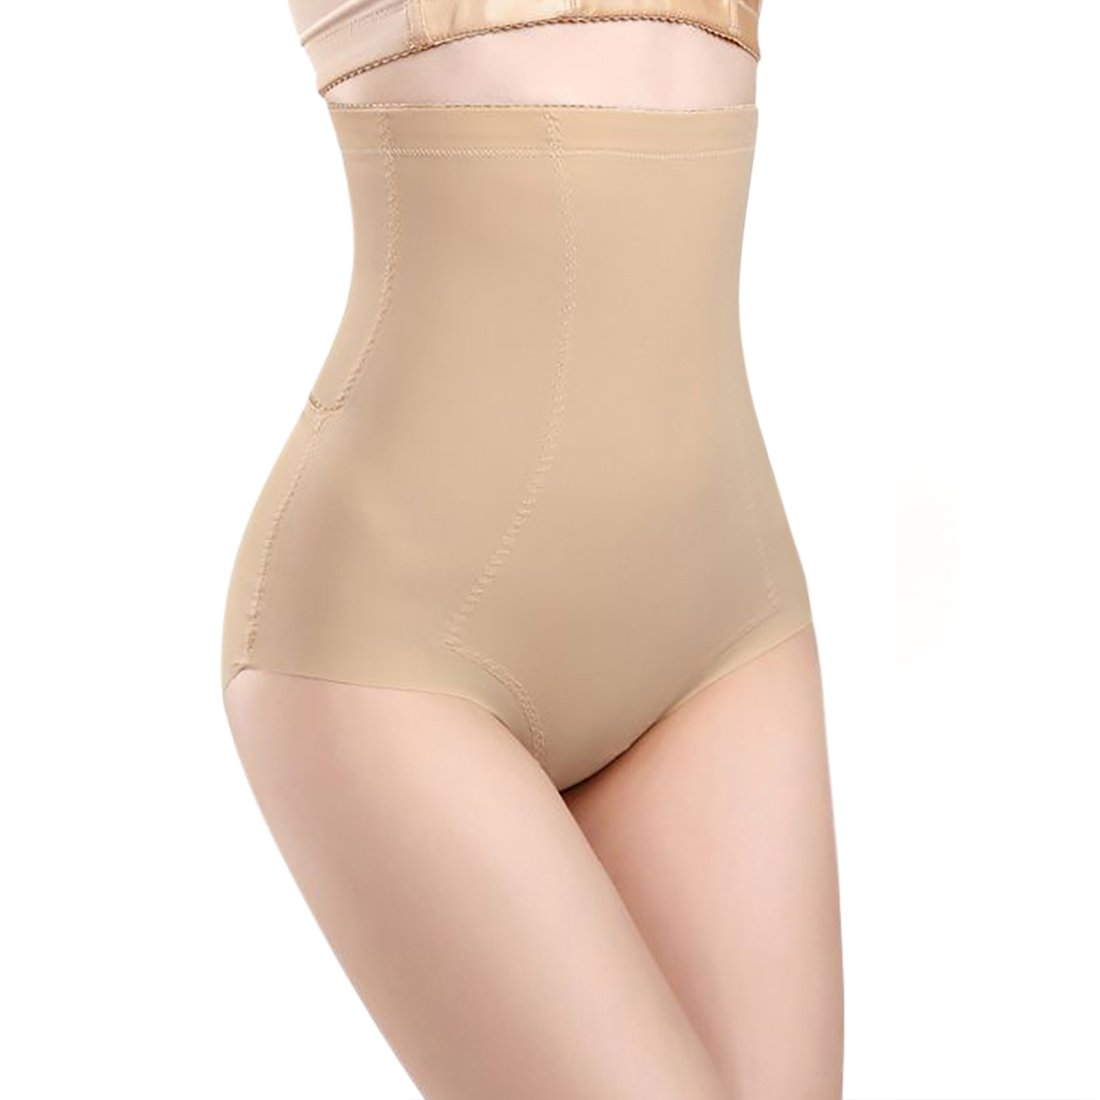 DreamLark Shapewear for Women,High Waist Smooth Breathable Girldles Seamless Body Shaper(New Version) (Beige, US Size S=Tag L)